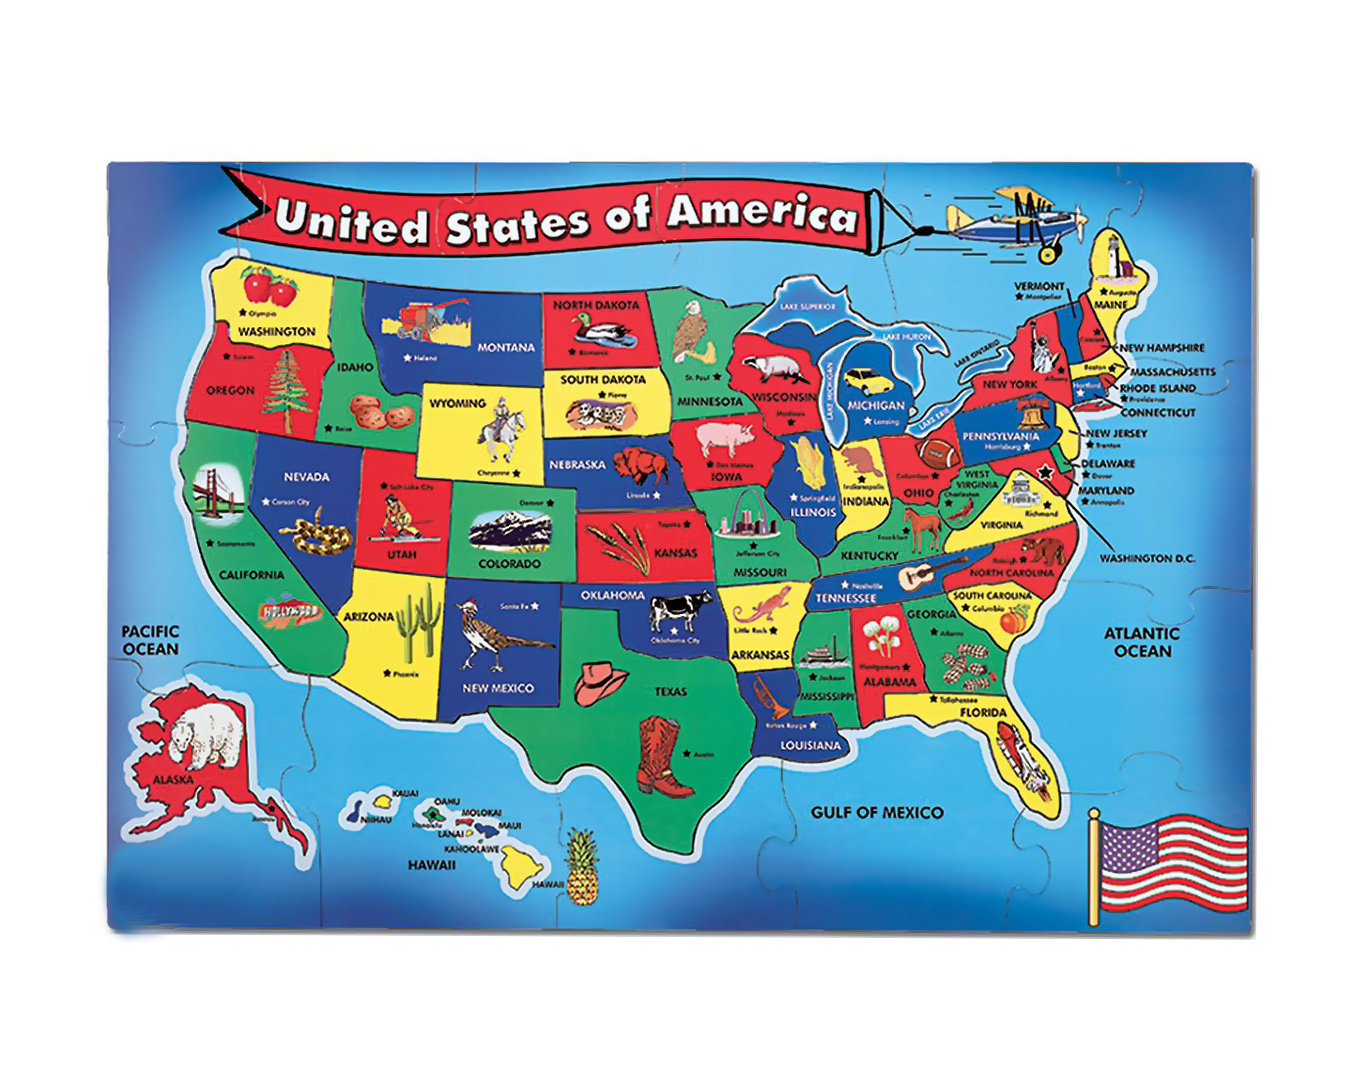 Detailed kids major tourist attractions map of the USA | USA | Maps ...